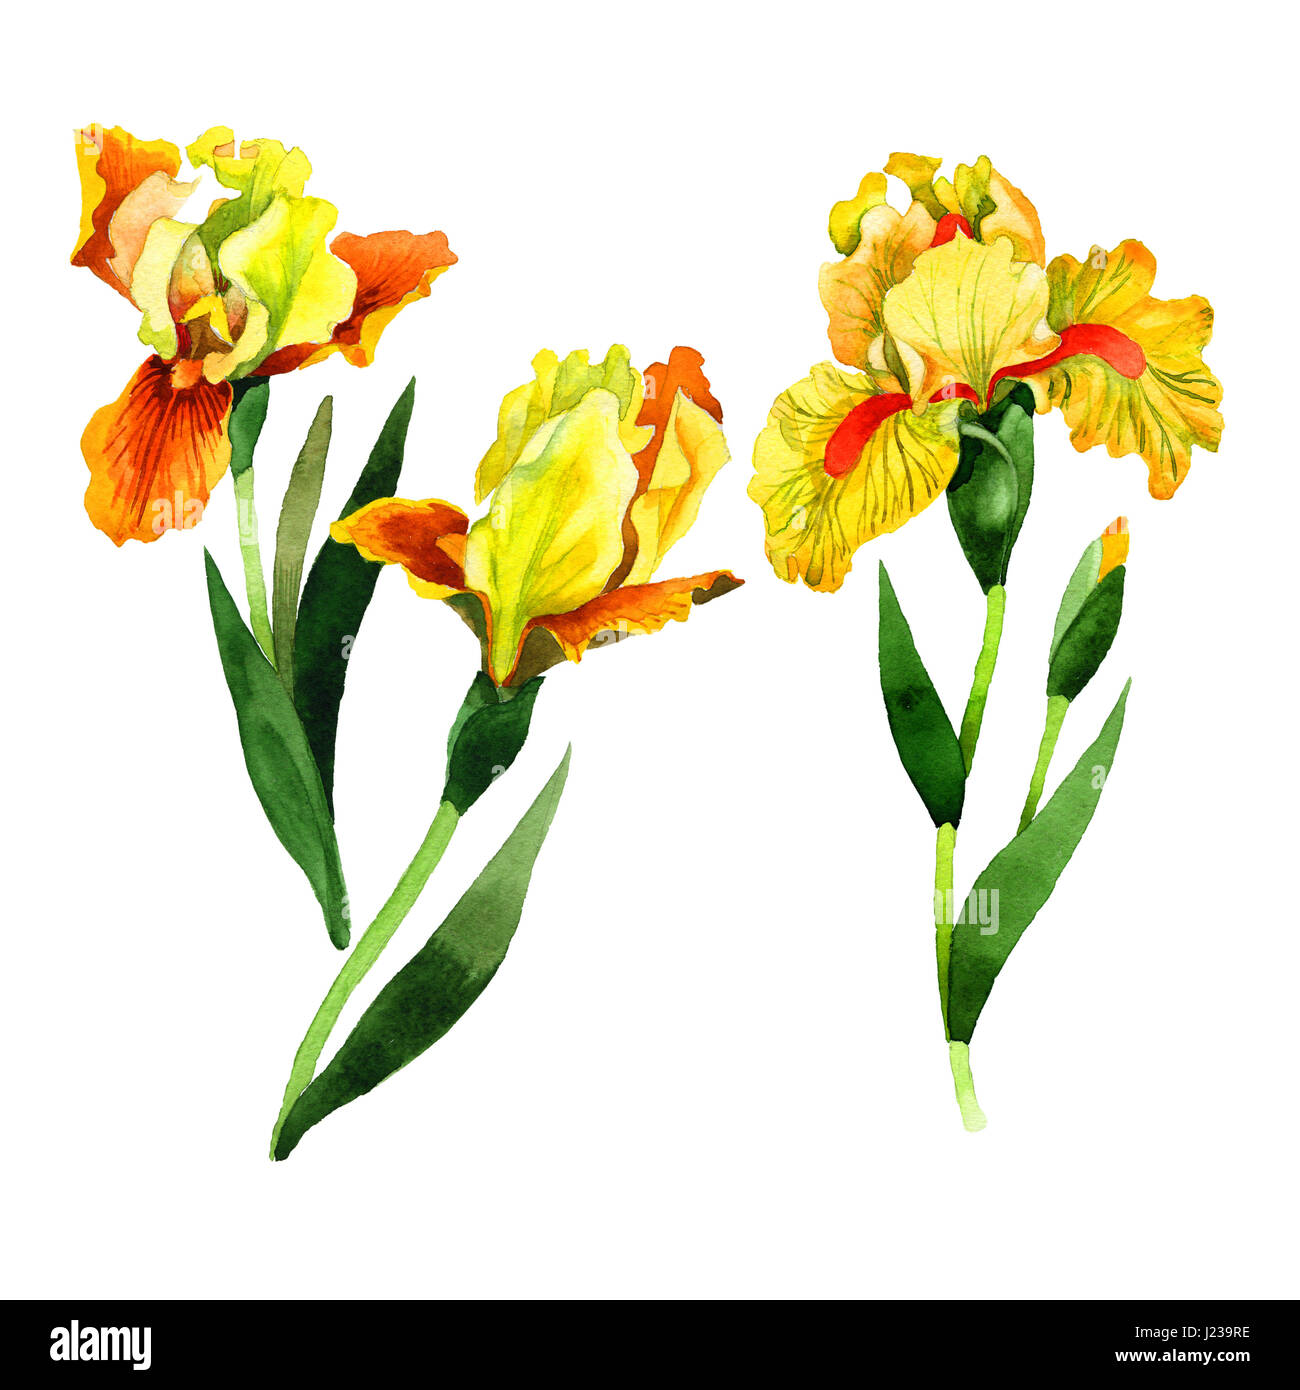 Iris flower cut out stock images pictures alamy wildflower iris flower in a watercolor style isolated full name of the plant irises izmirmasajfo